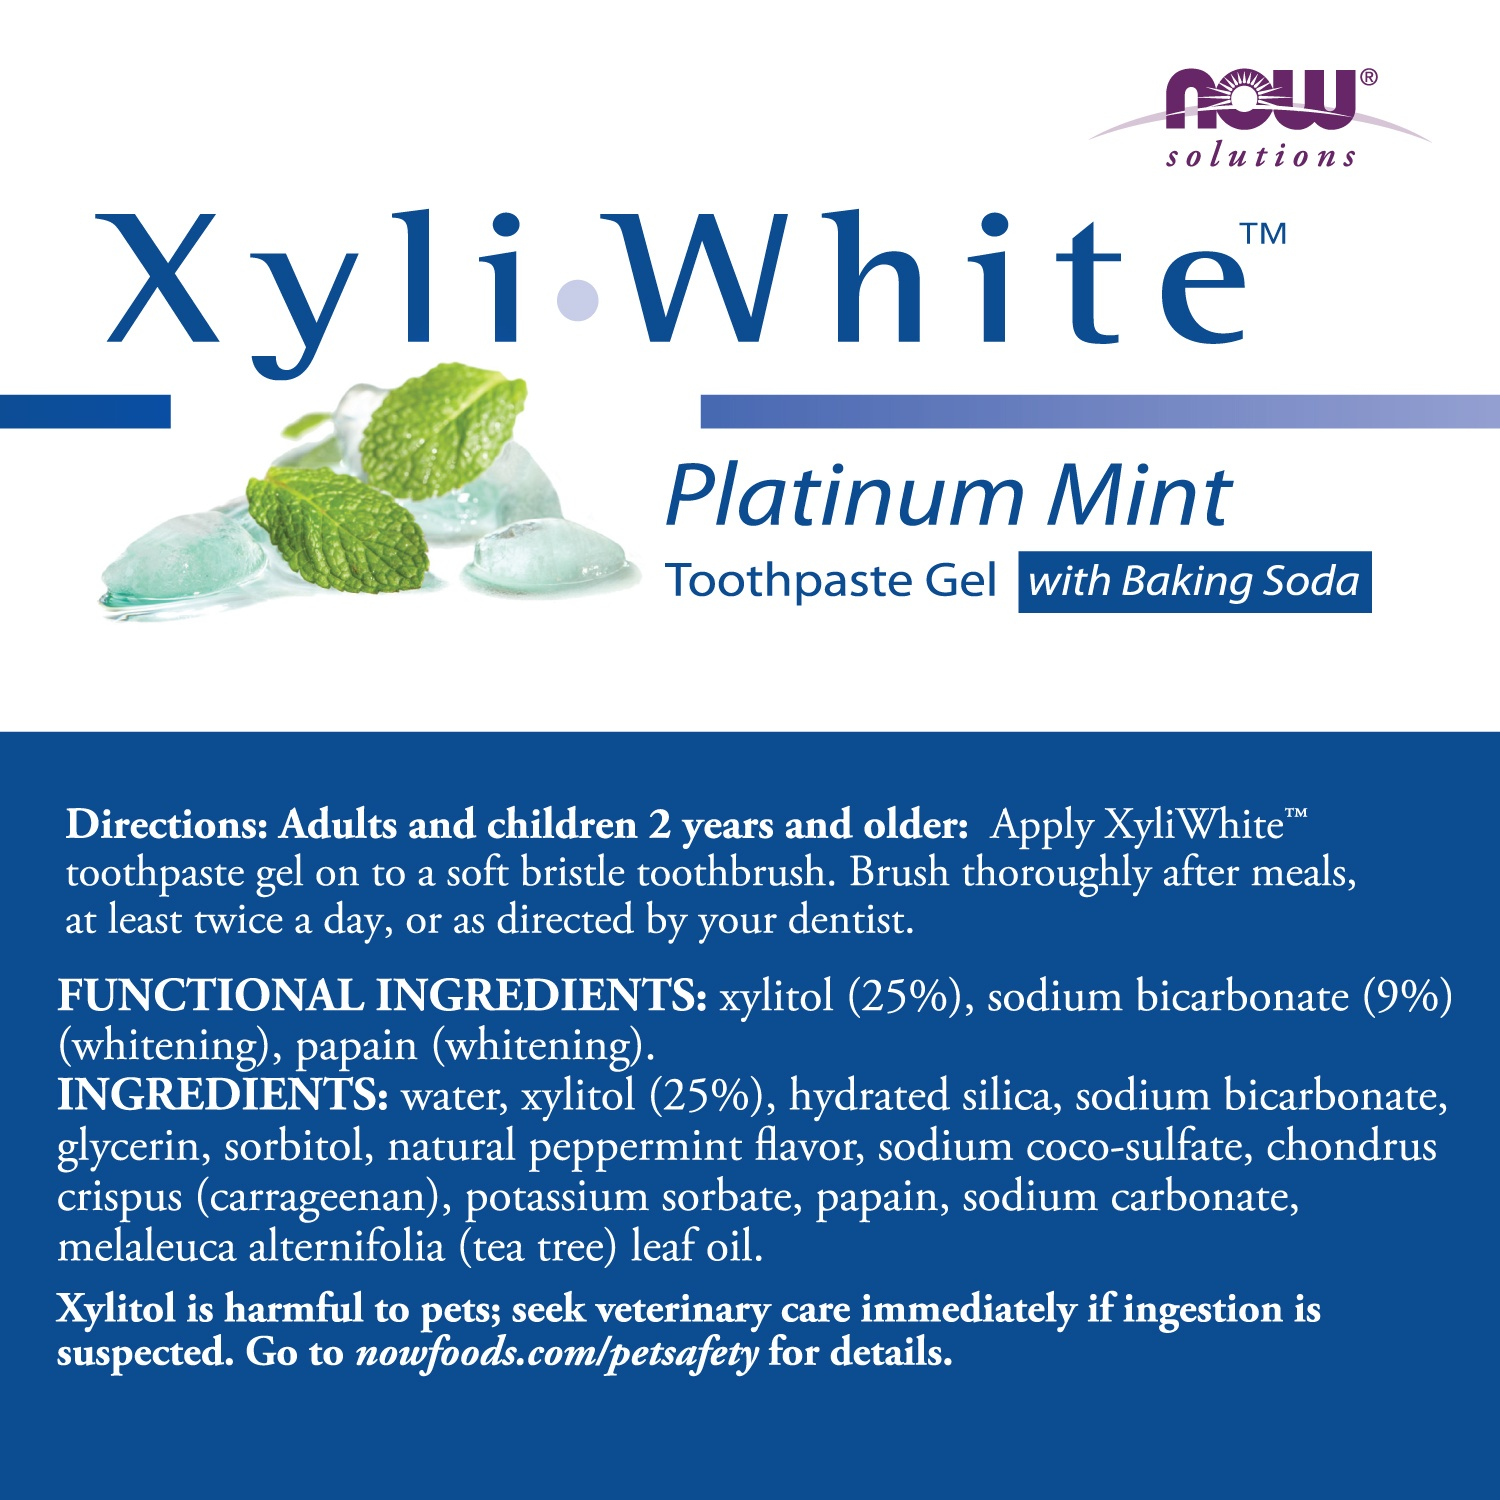 slide 2 of 2, NOW Xyliwhite Platinum Mint Toothpaste Gel with Baking Soda,